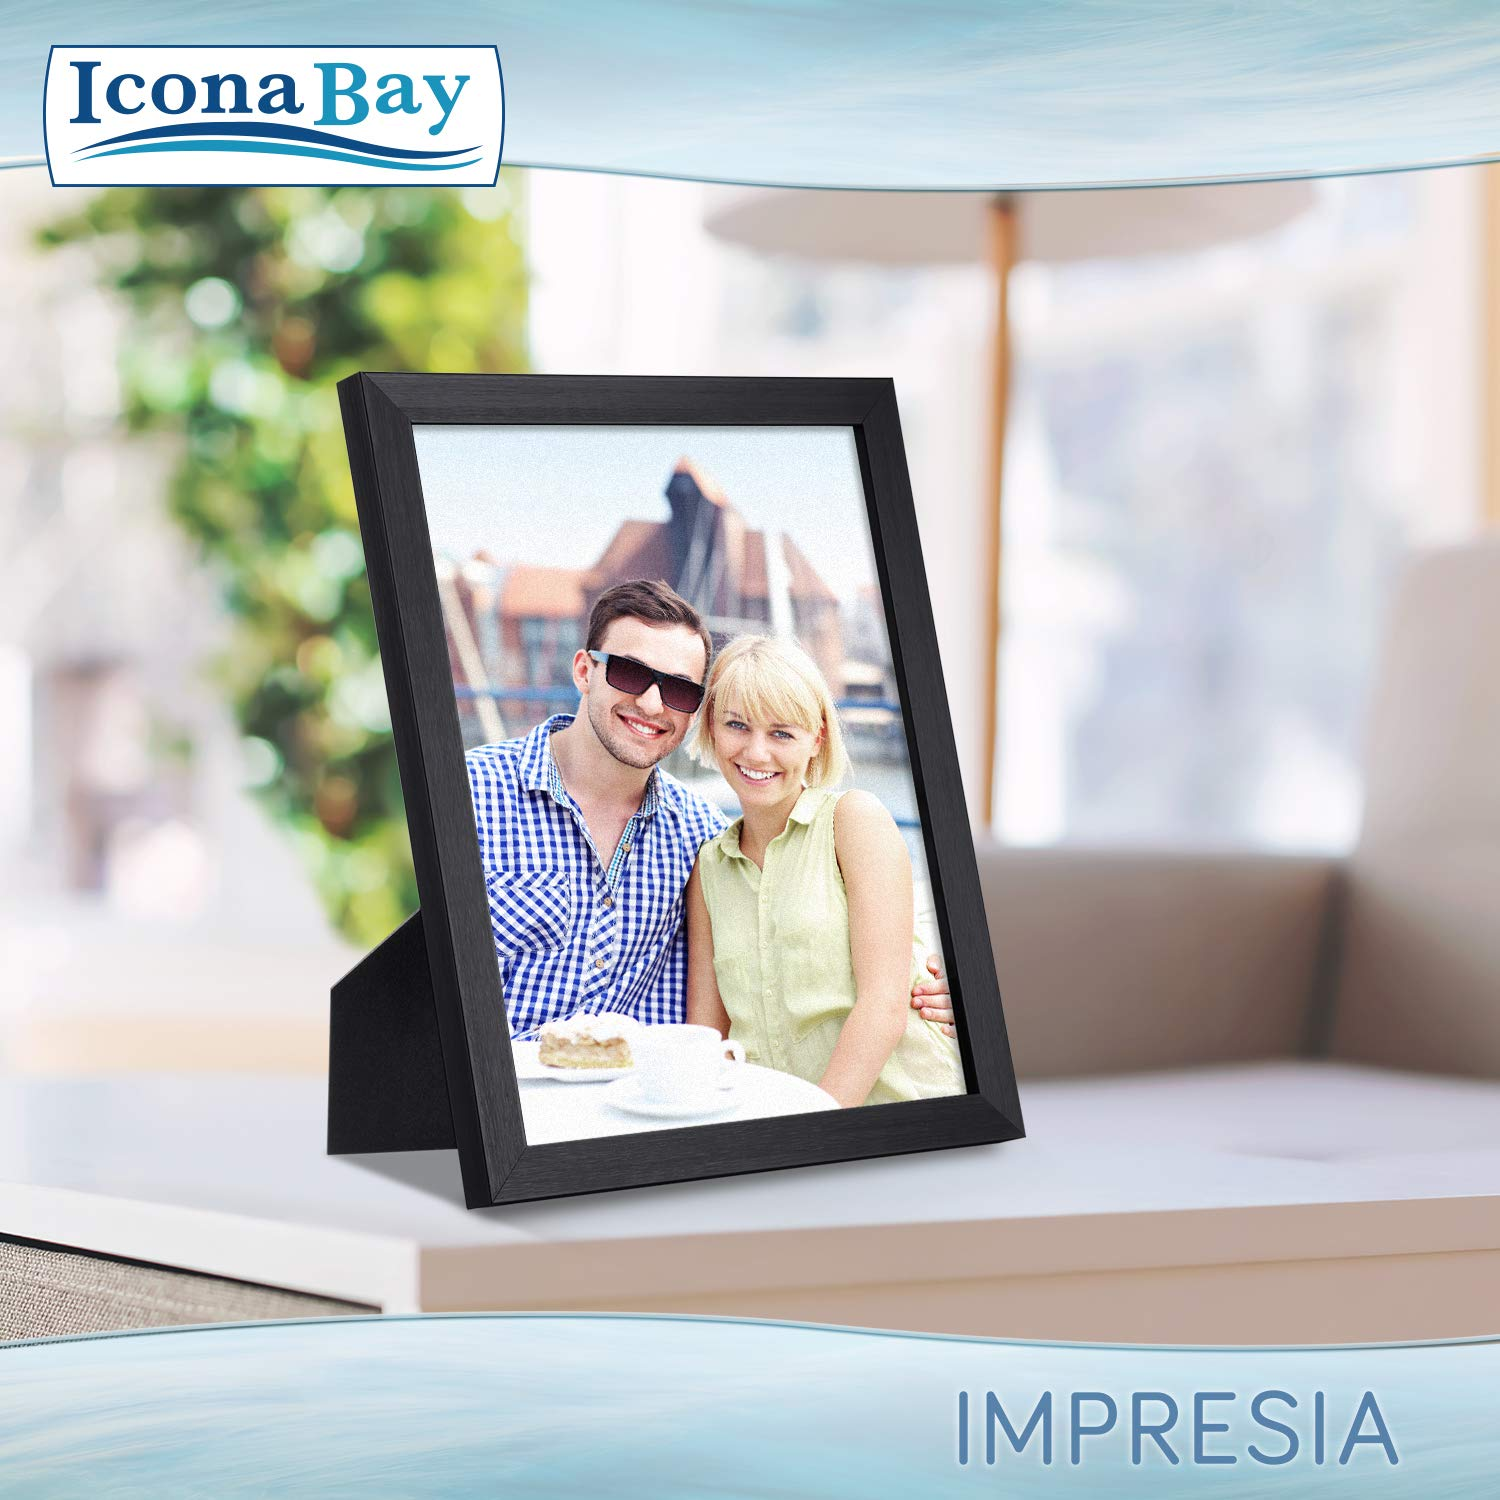 Icona Bay 8x10 Picture Frame Pack (4 Pack, Black) 8 x 10 Frame, Tabletop and Wall Hang Hardware Included with Photo Frames, Impresia Collection by Icona Bay (Image #4)